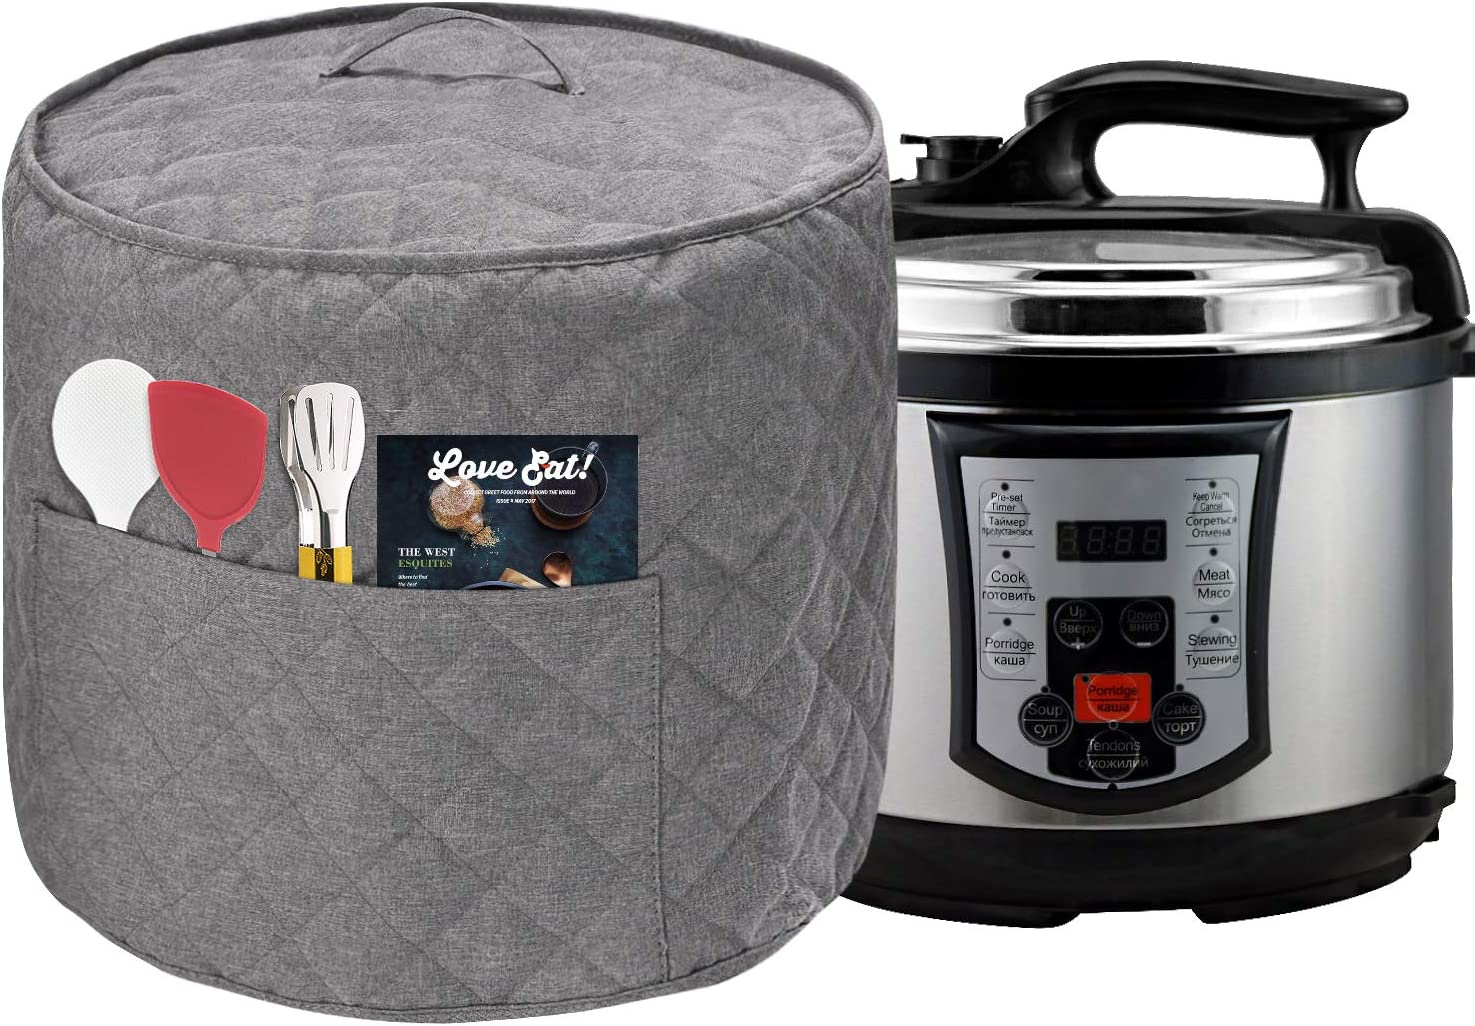 Dust Cover for Instant Pot Pressure Cooker, Cloth Cover with Pockets for Holding Extra Accessories, Waterproof Easy Cleaning,Can Ironable (Light Gray, For 6 Quart Instant Pot)